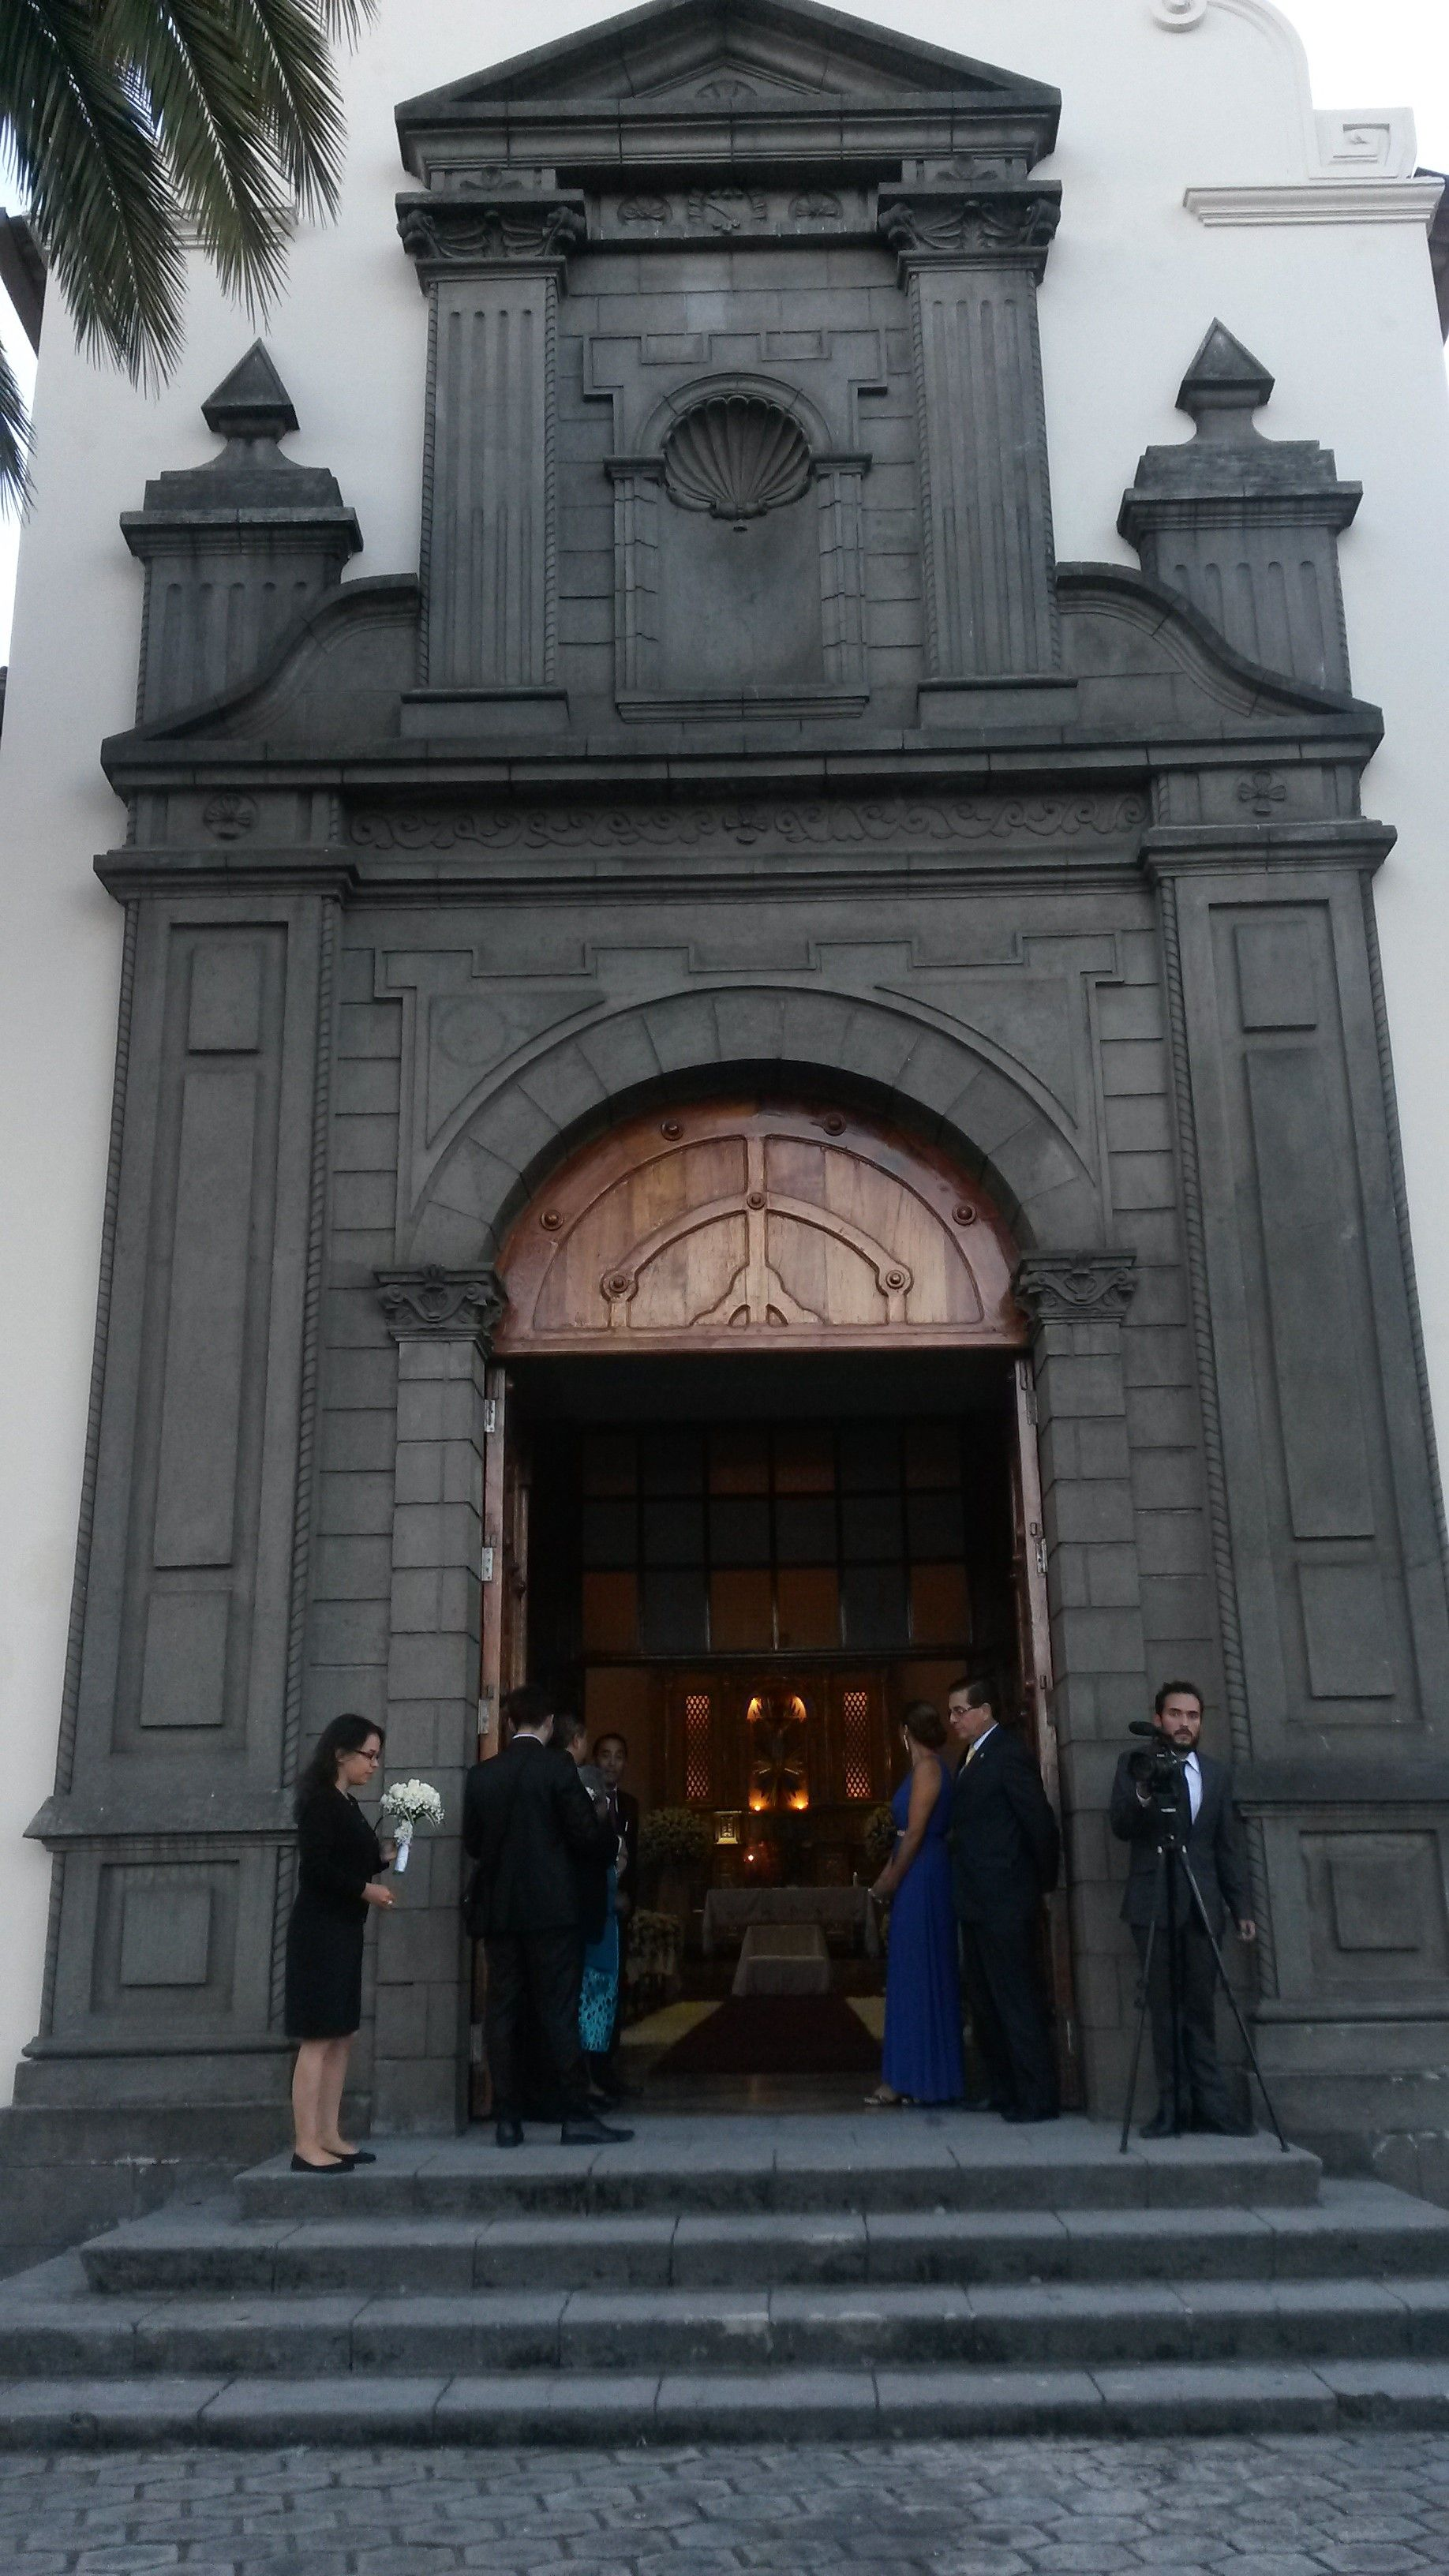 Capilla De Nuestra Señora De Lourdes Quito Ecuador Weddingsquito Getmarriedinecuador Destinationweddingsecuador Chapel Church Design Decor Home Decor